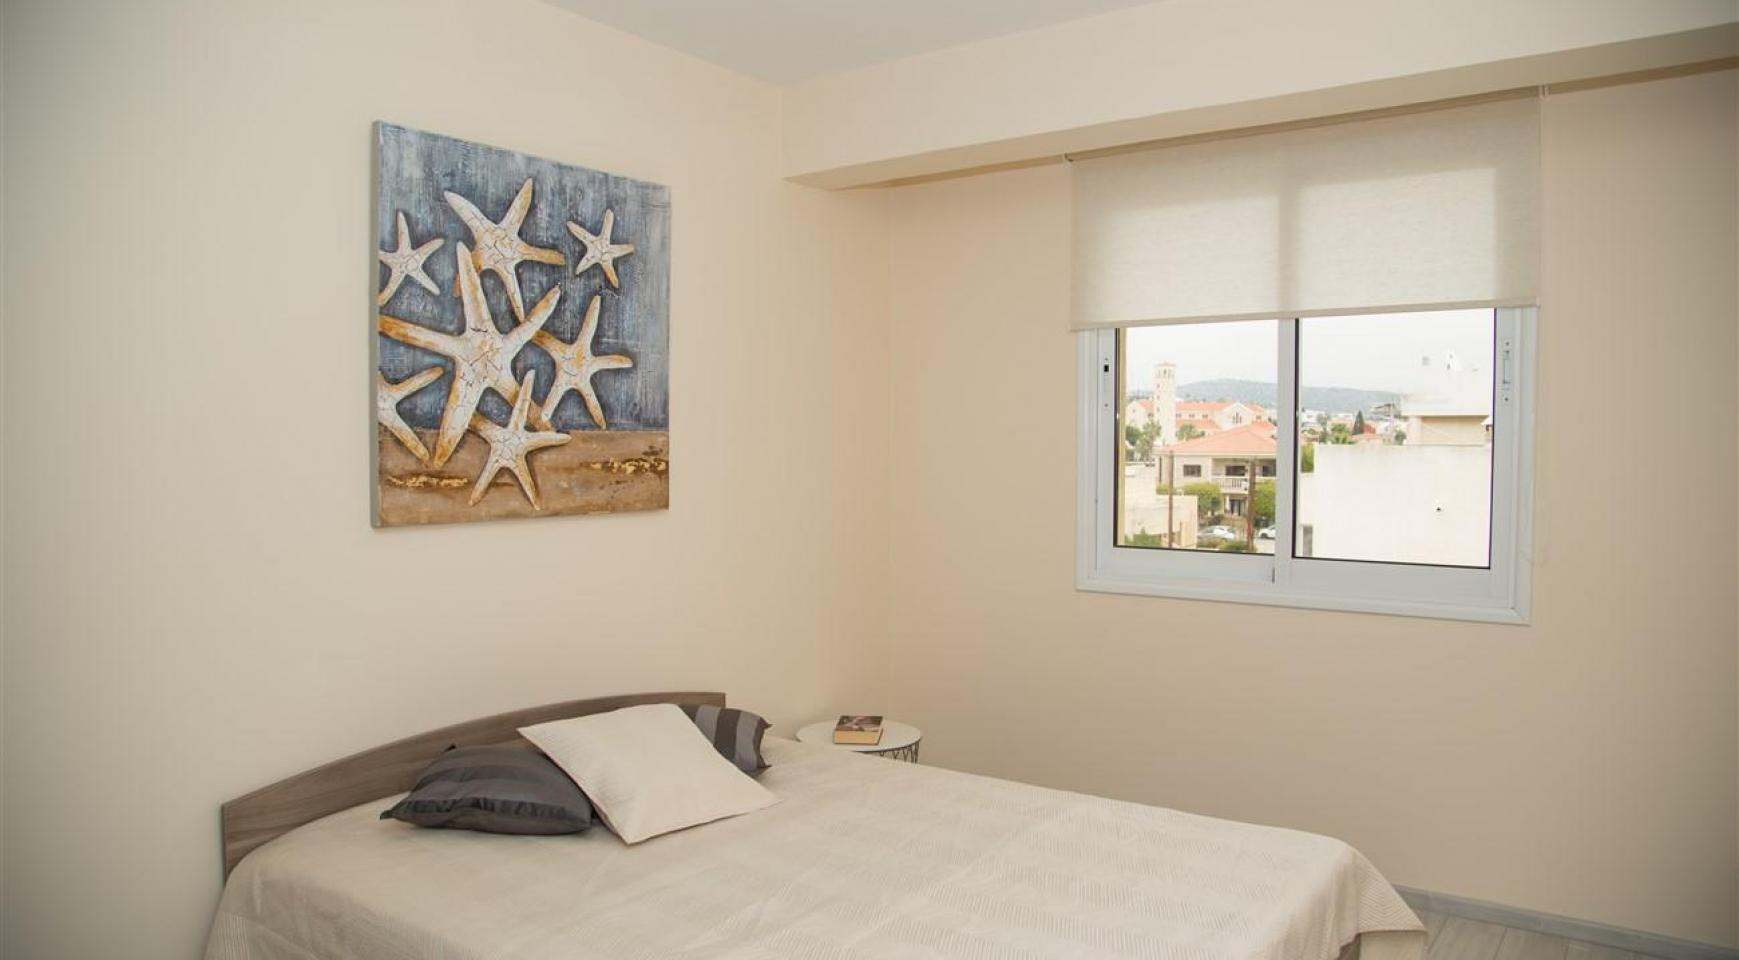 Luxury 2 Bedroom Apartment Frida 201 in the Tourist Area - 10